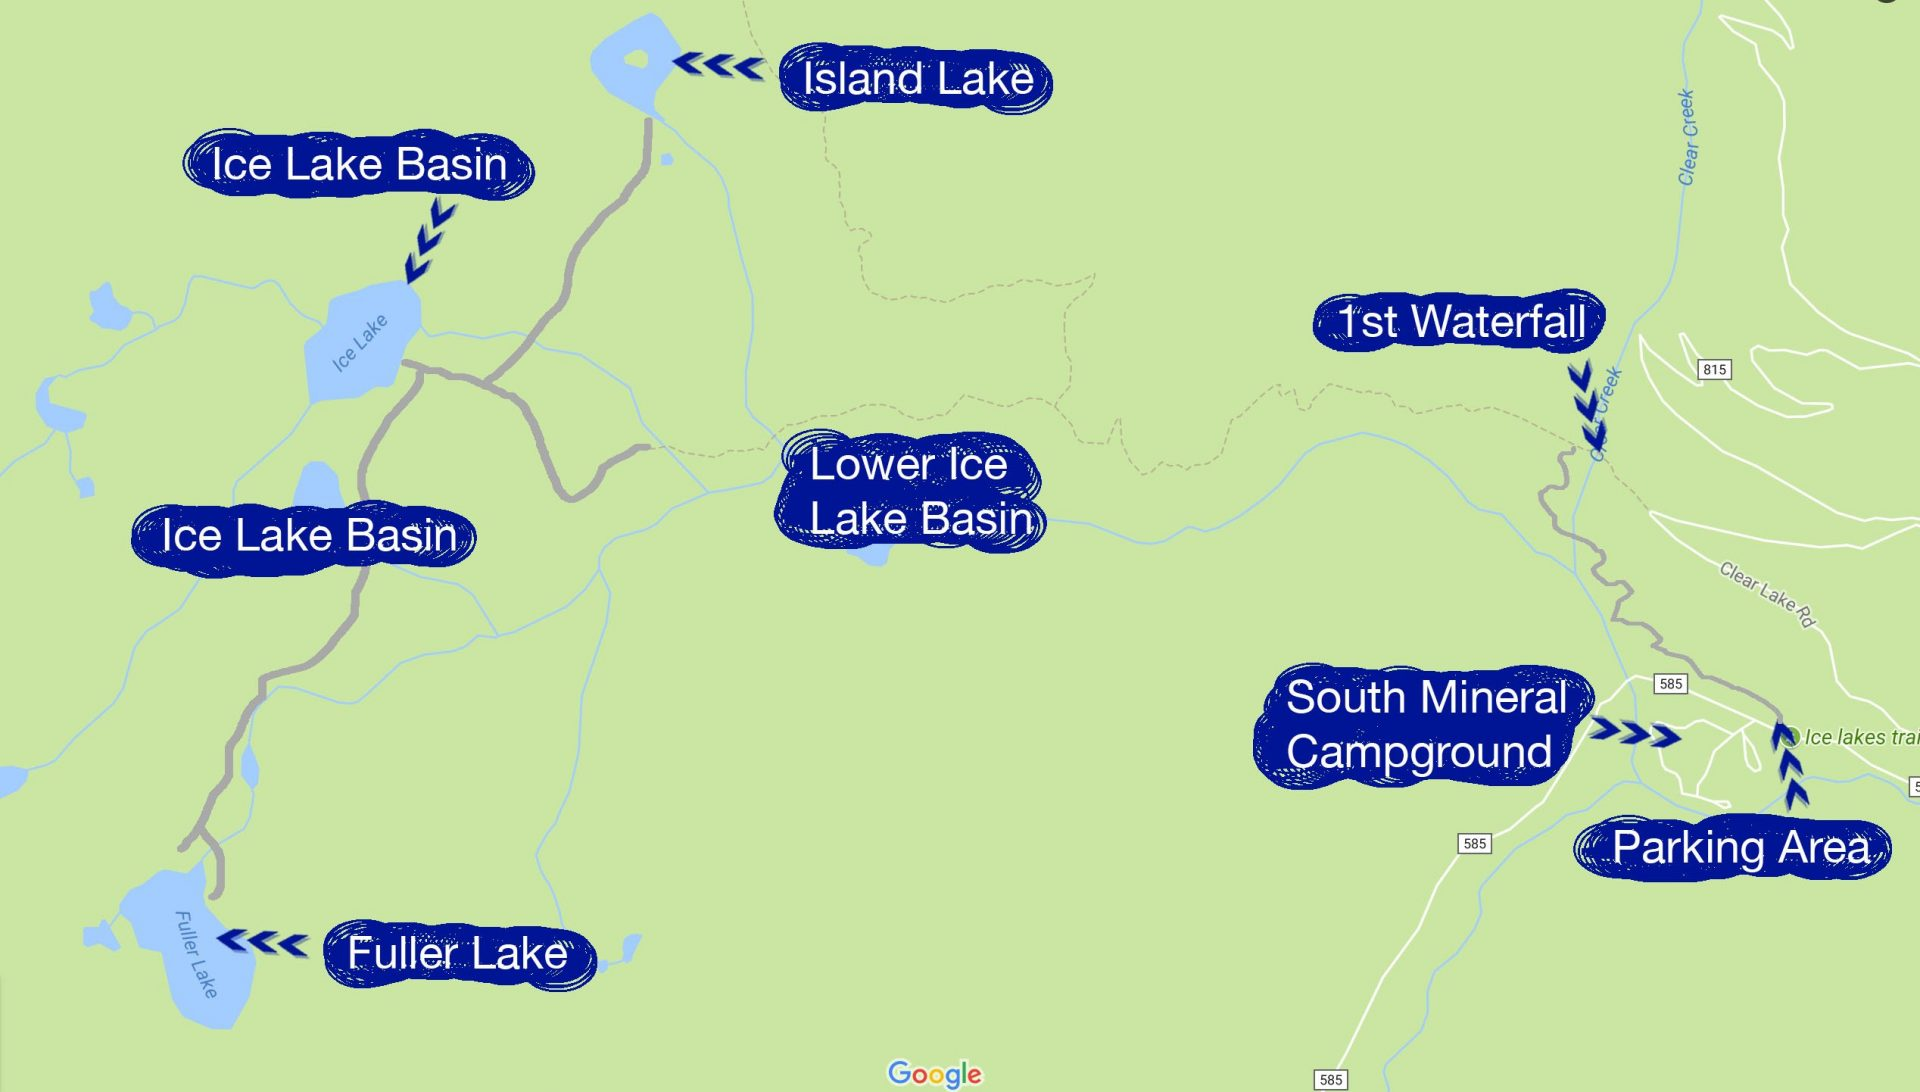 Hiking Map for the Ice Lake Basin trail